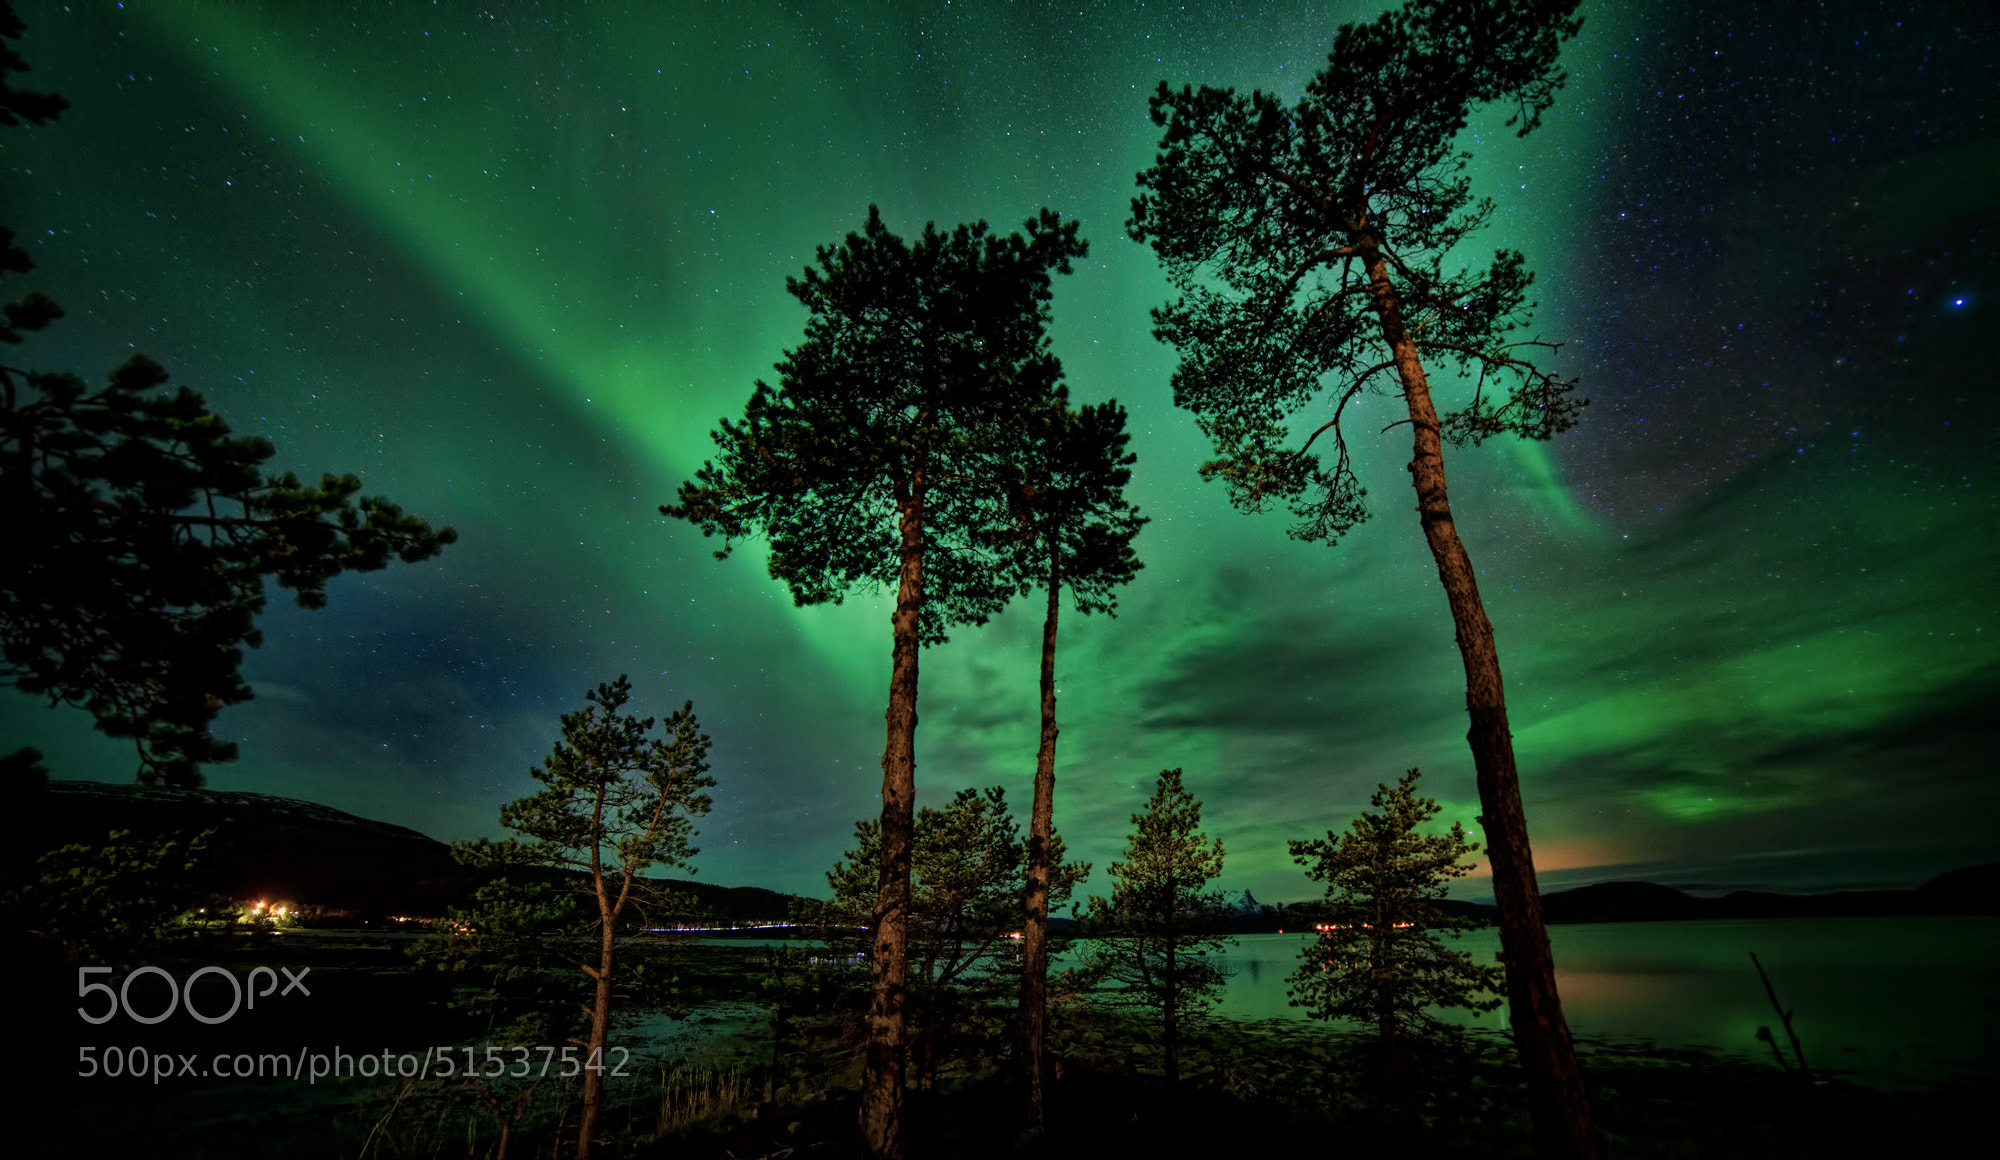 Photograph A Night in November by Morten  Aspaas on 500px